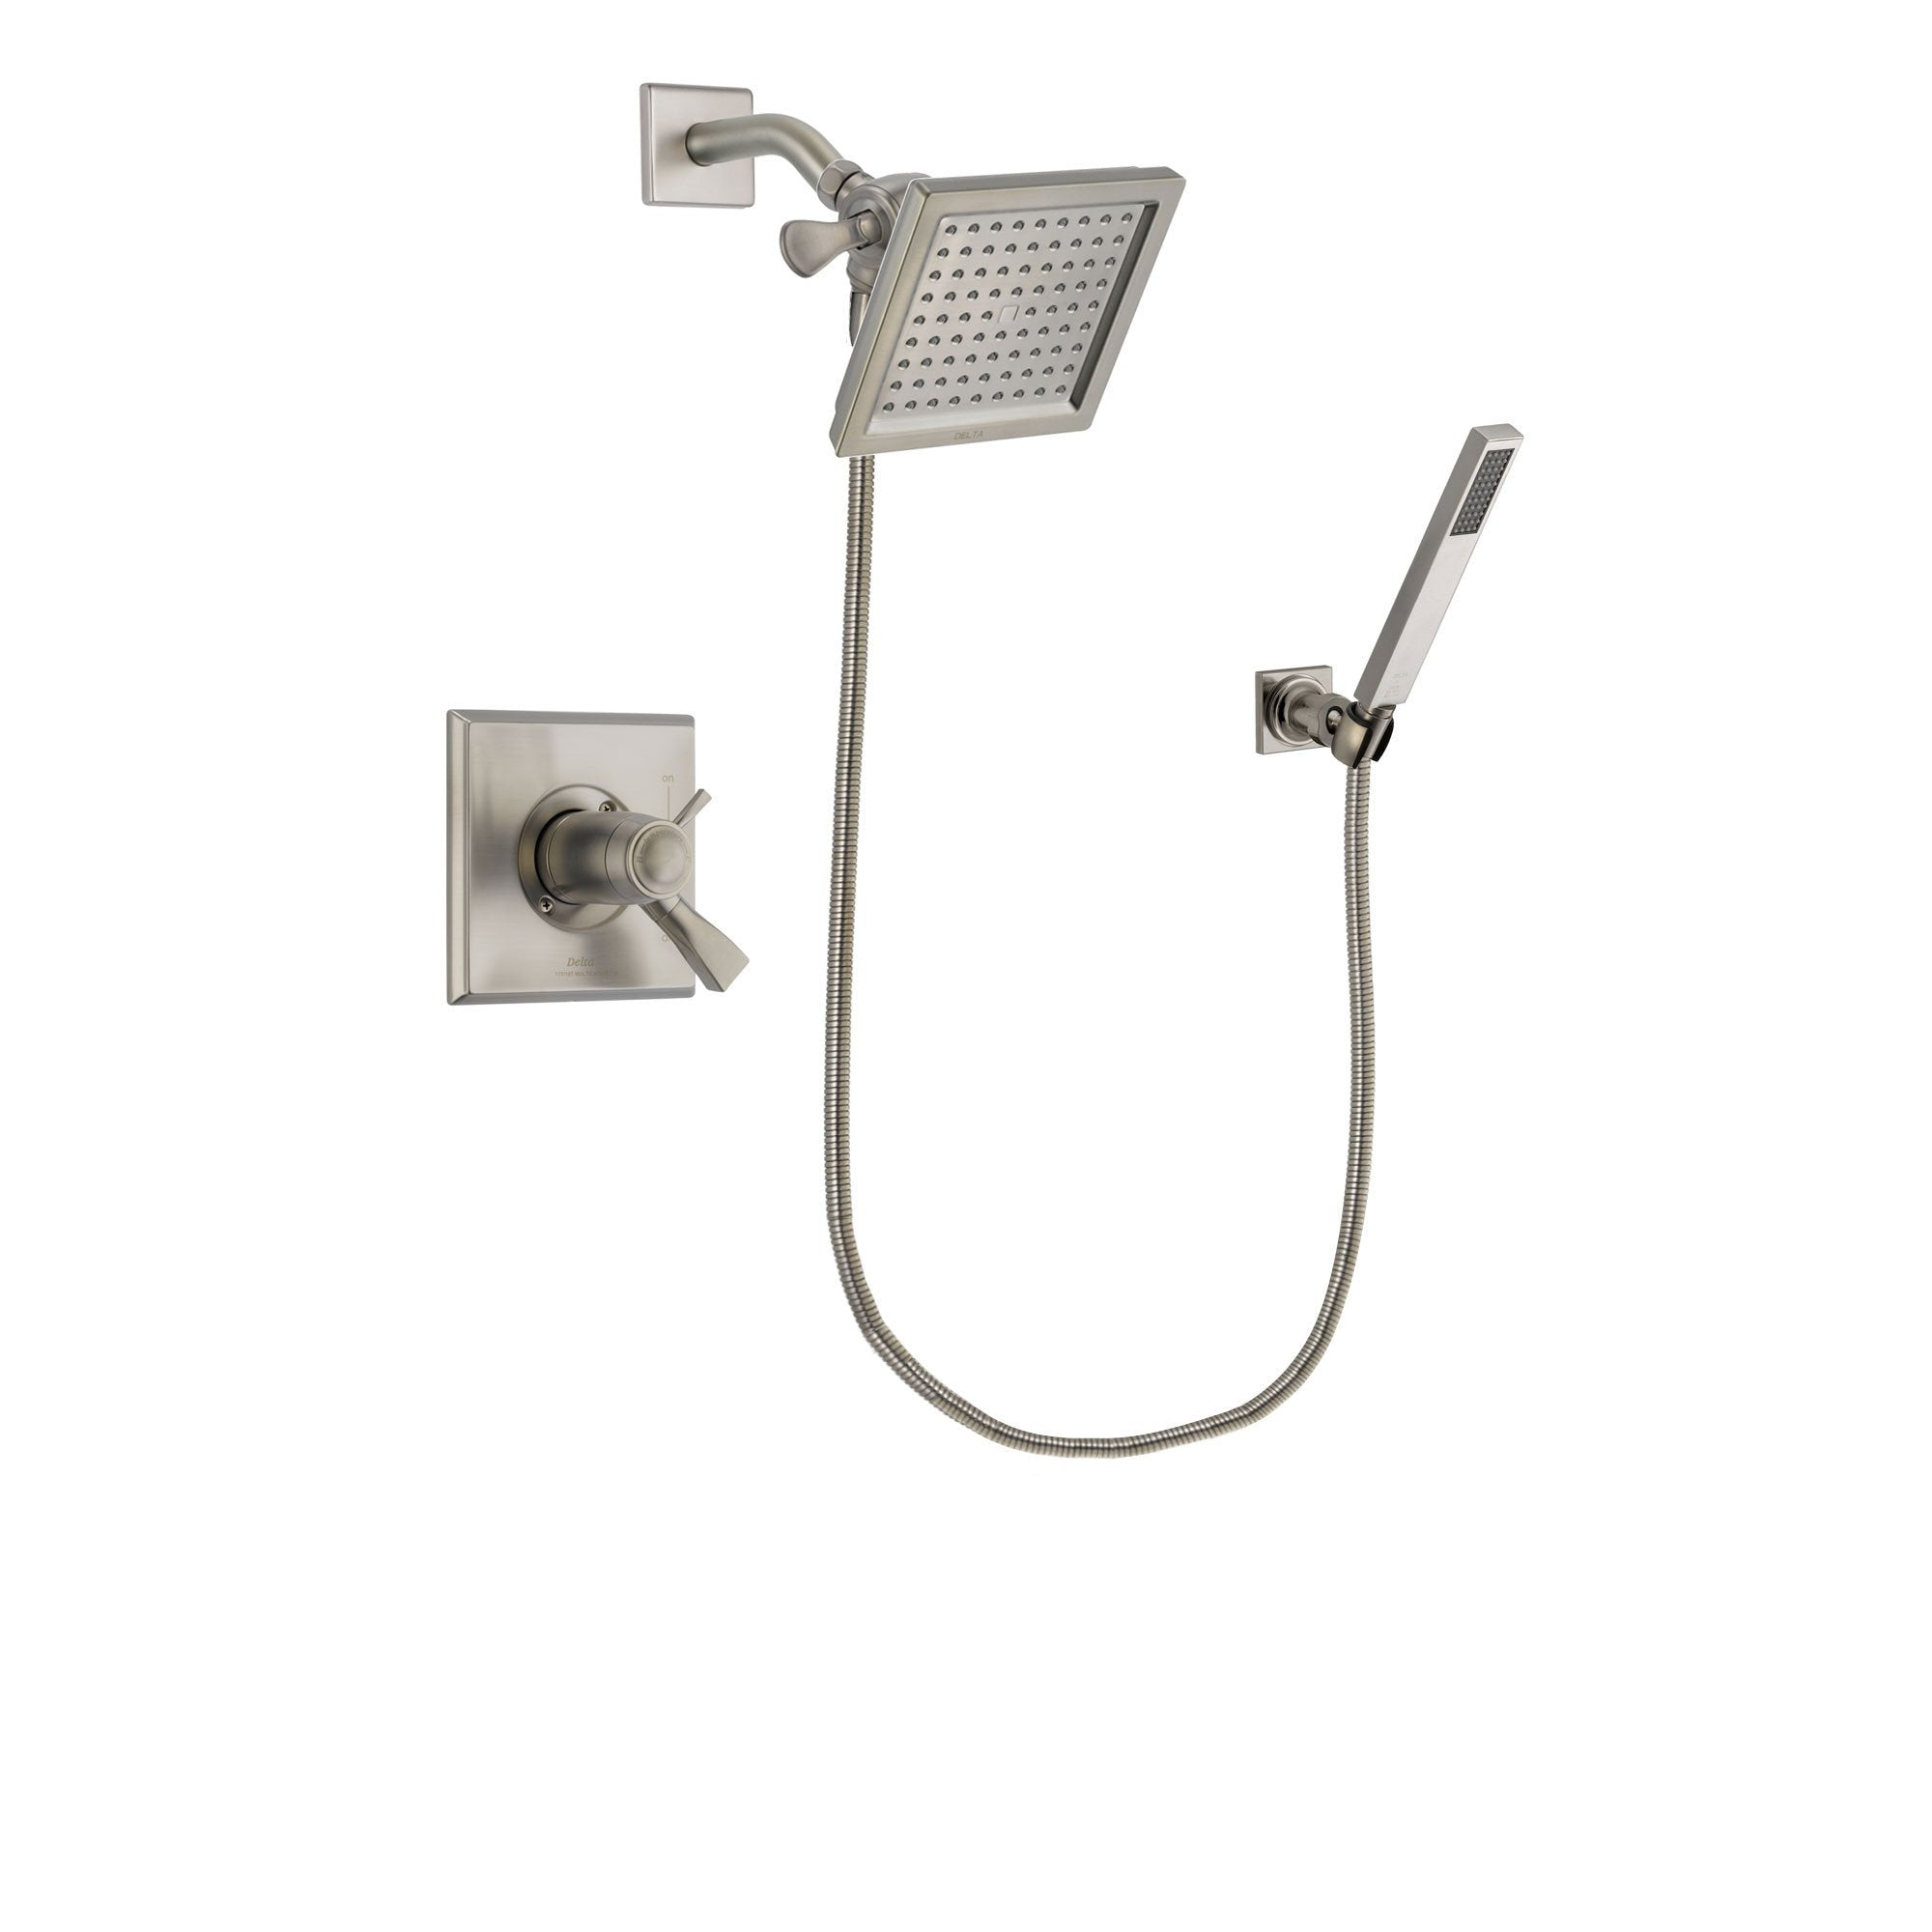 Delta Dryden Stainless Steel Finish Shower Faucet System w/ Hand Spray DSP2184V